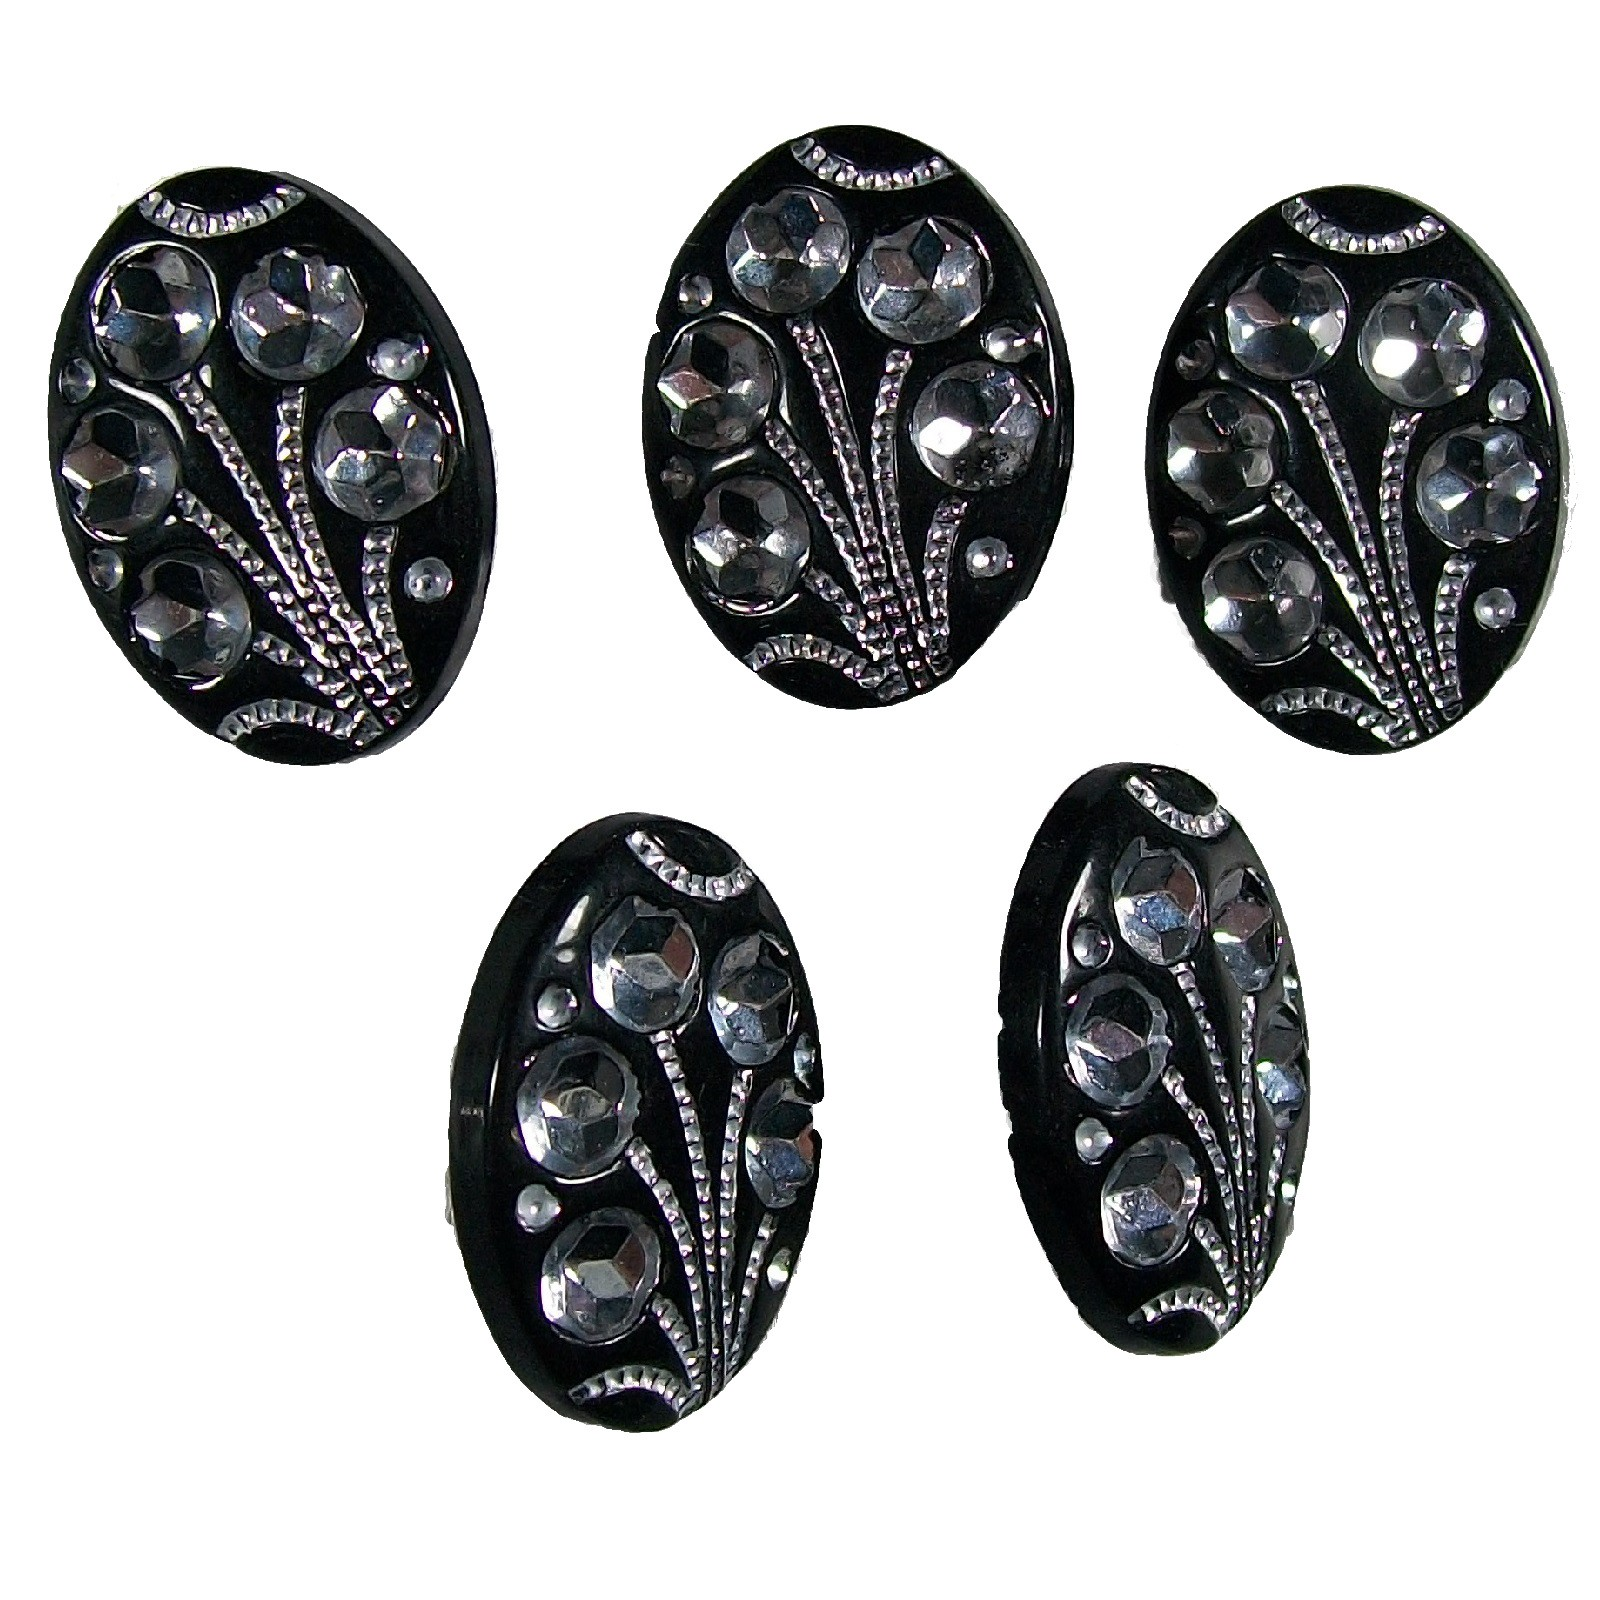 Black Diamante Art Deco Style Buttons 20mm x 15mm Oval Pack of 5